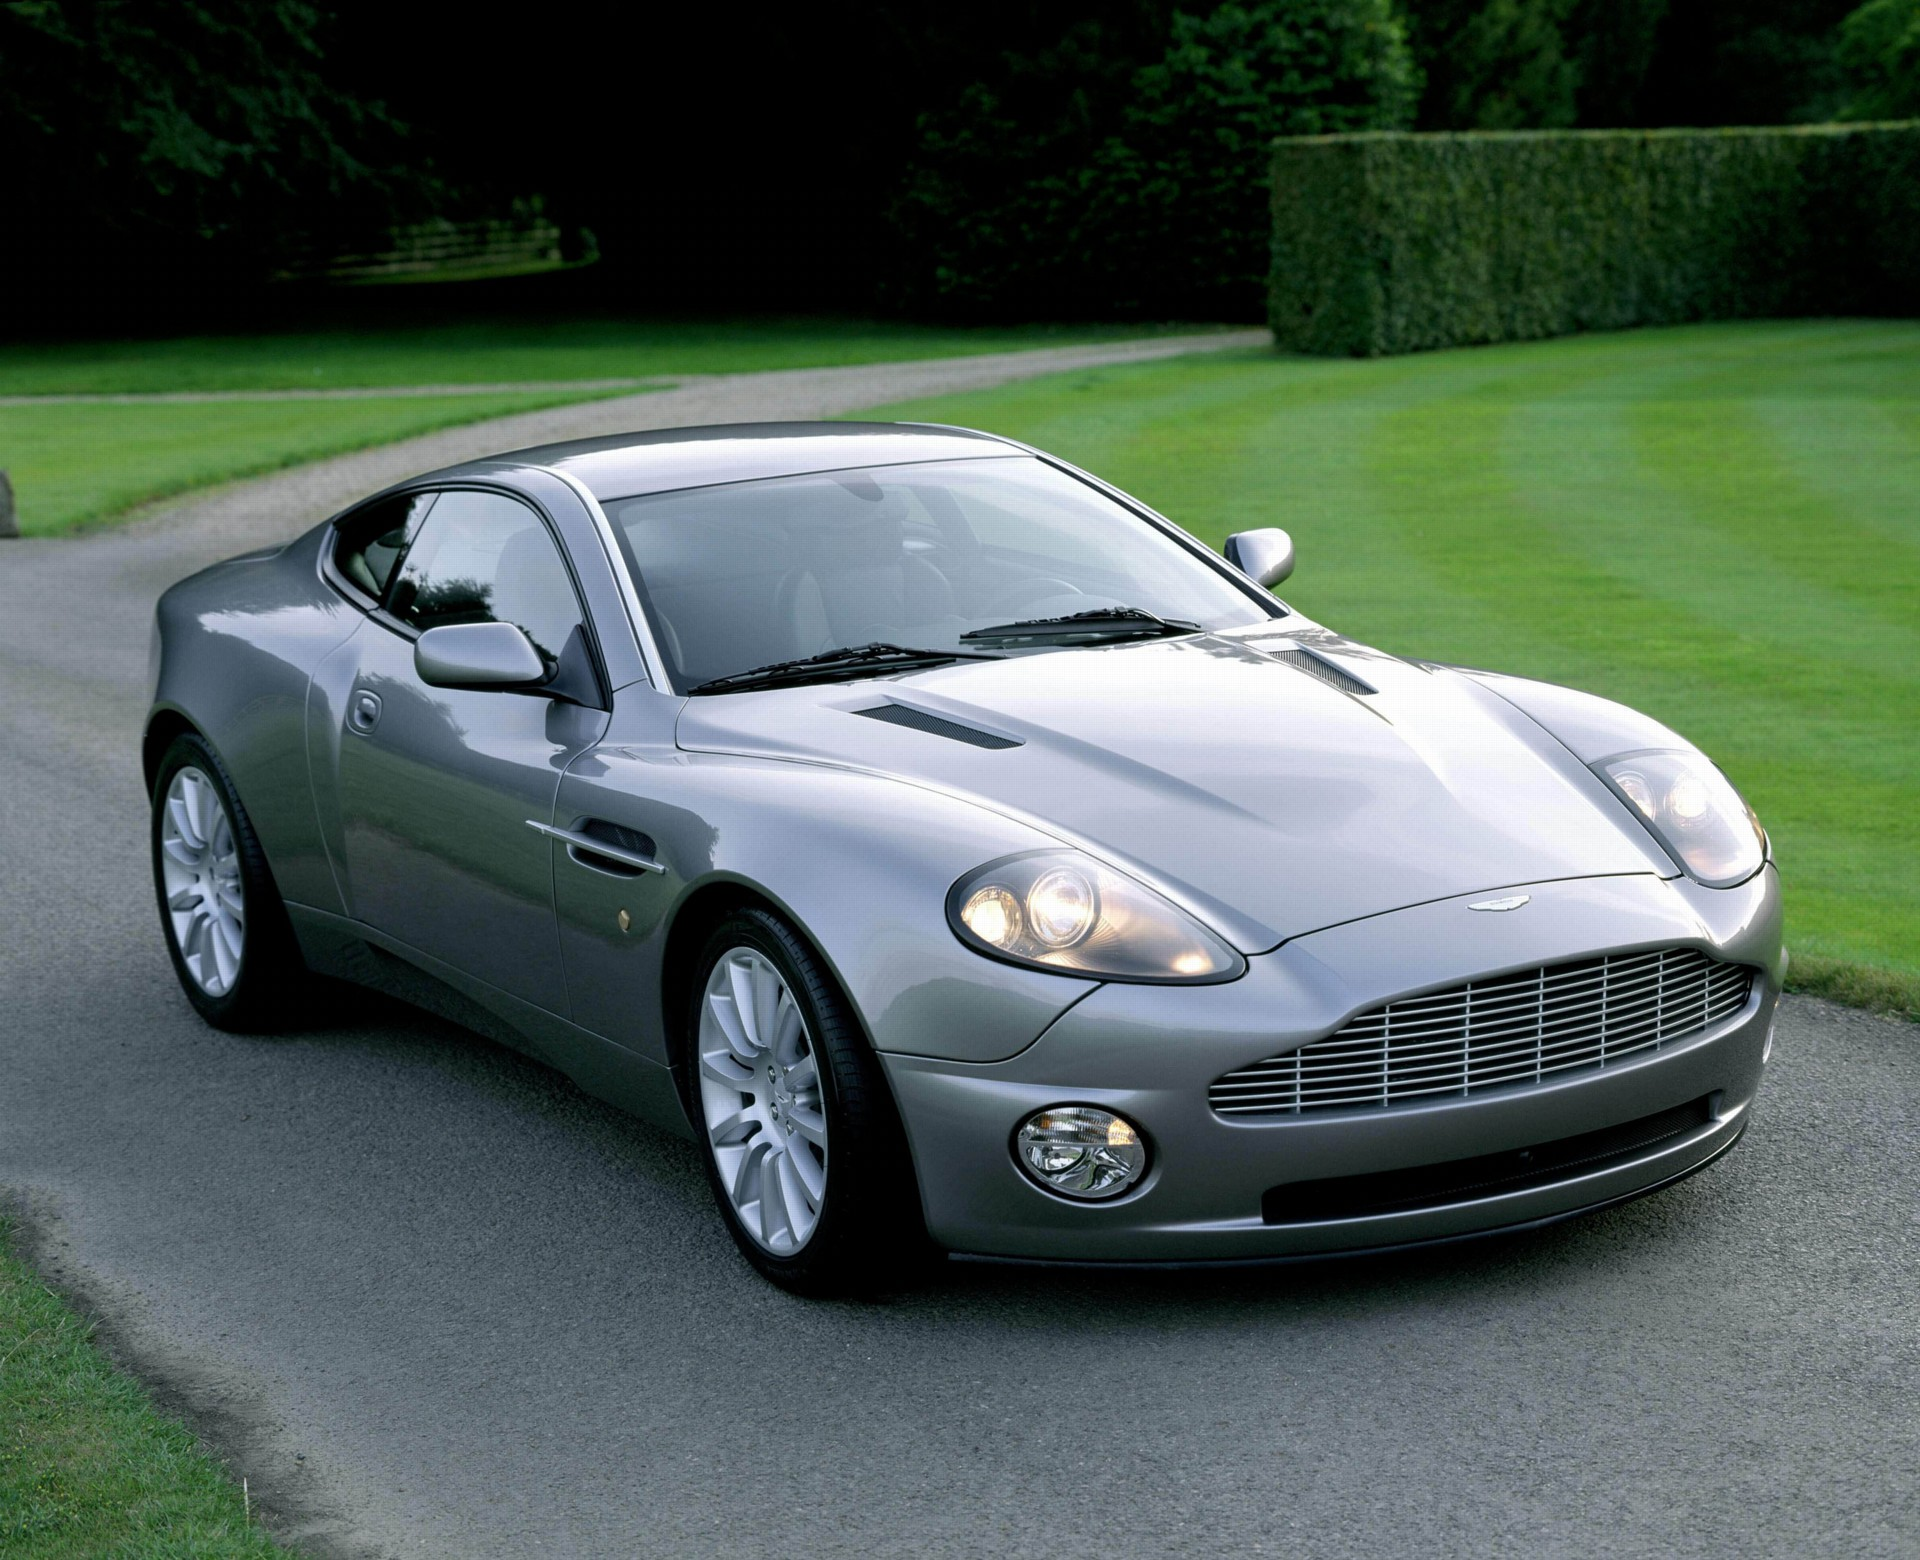 2007 aston martin vanquish s pictures history value research news. Black Bedroom Furniture Sets. Home Design Ideas